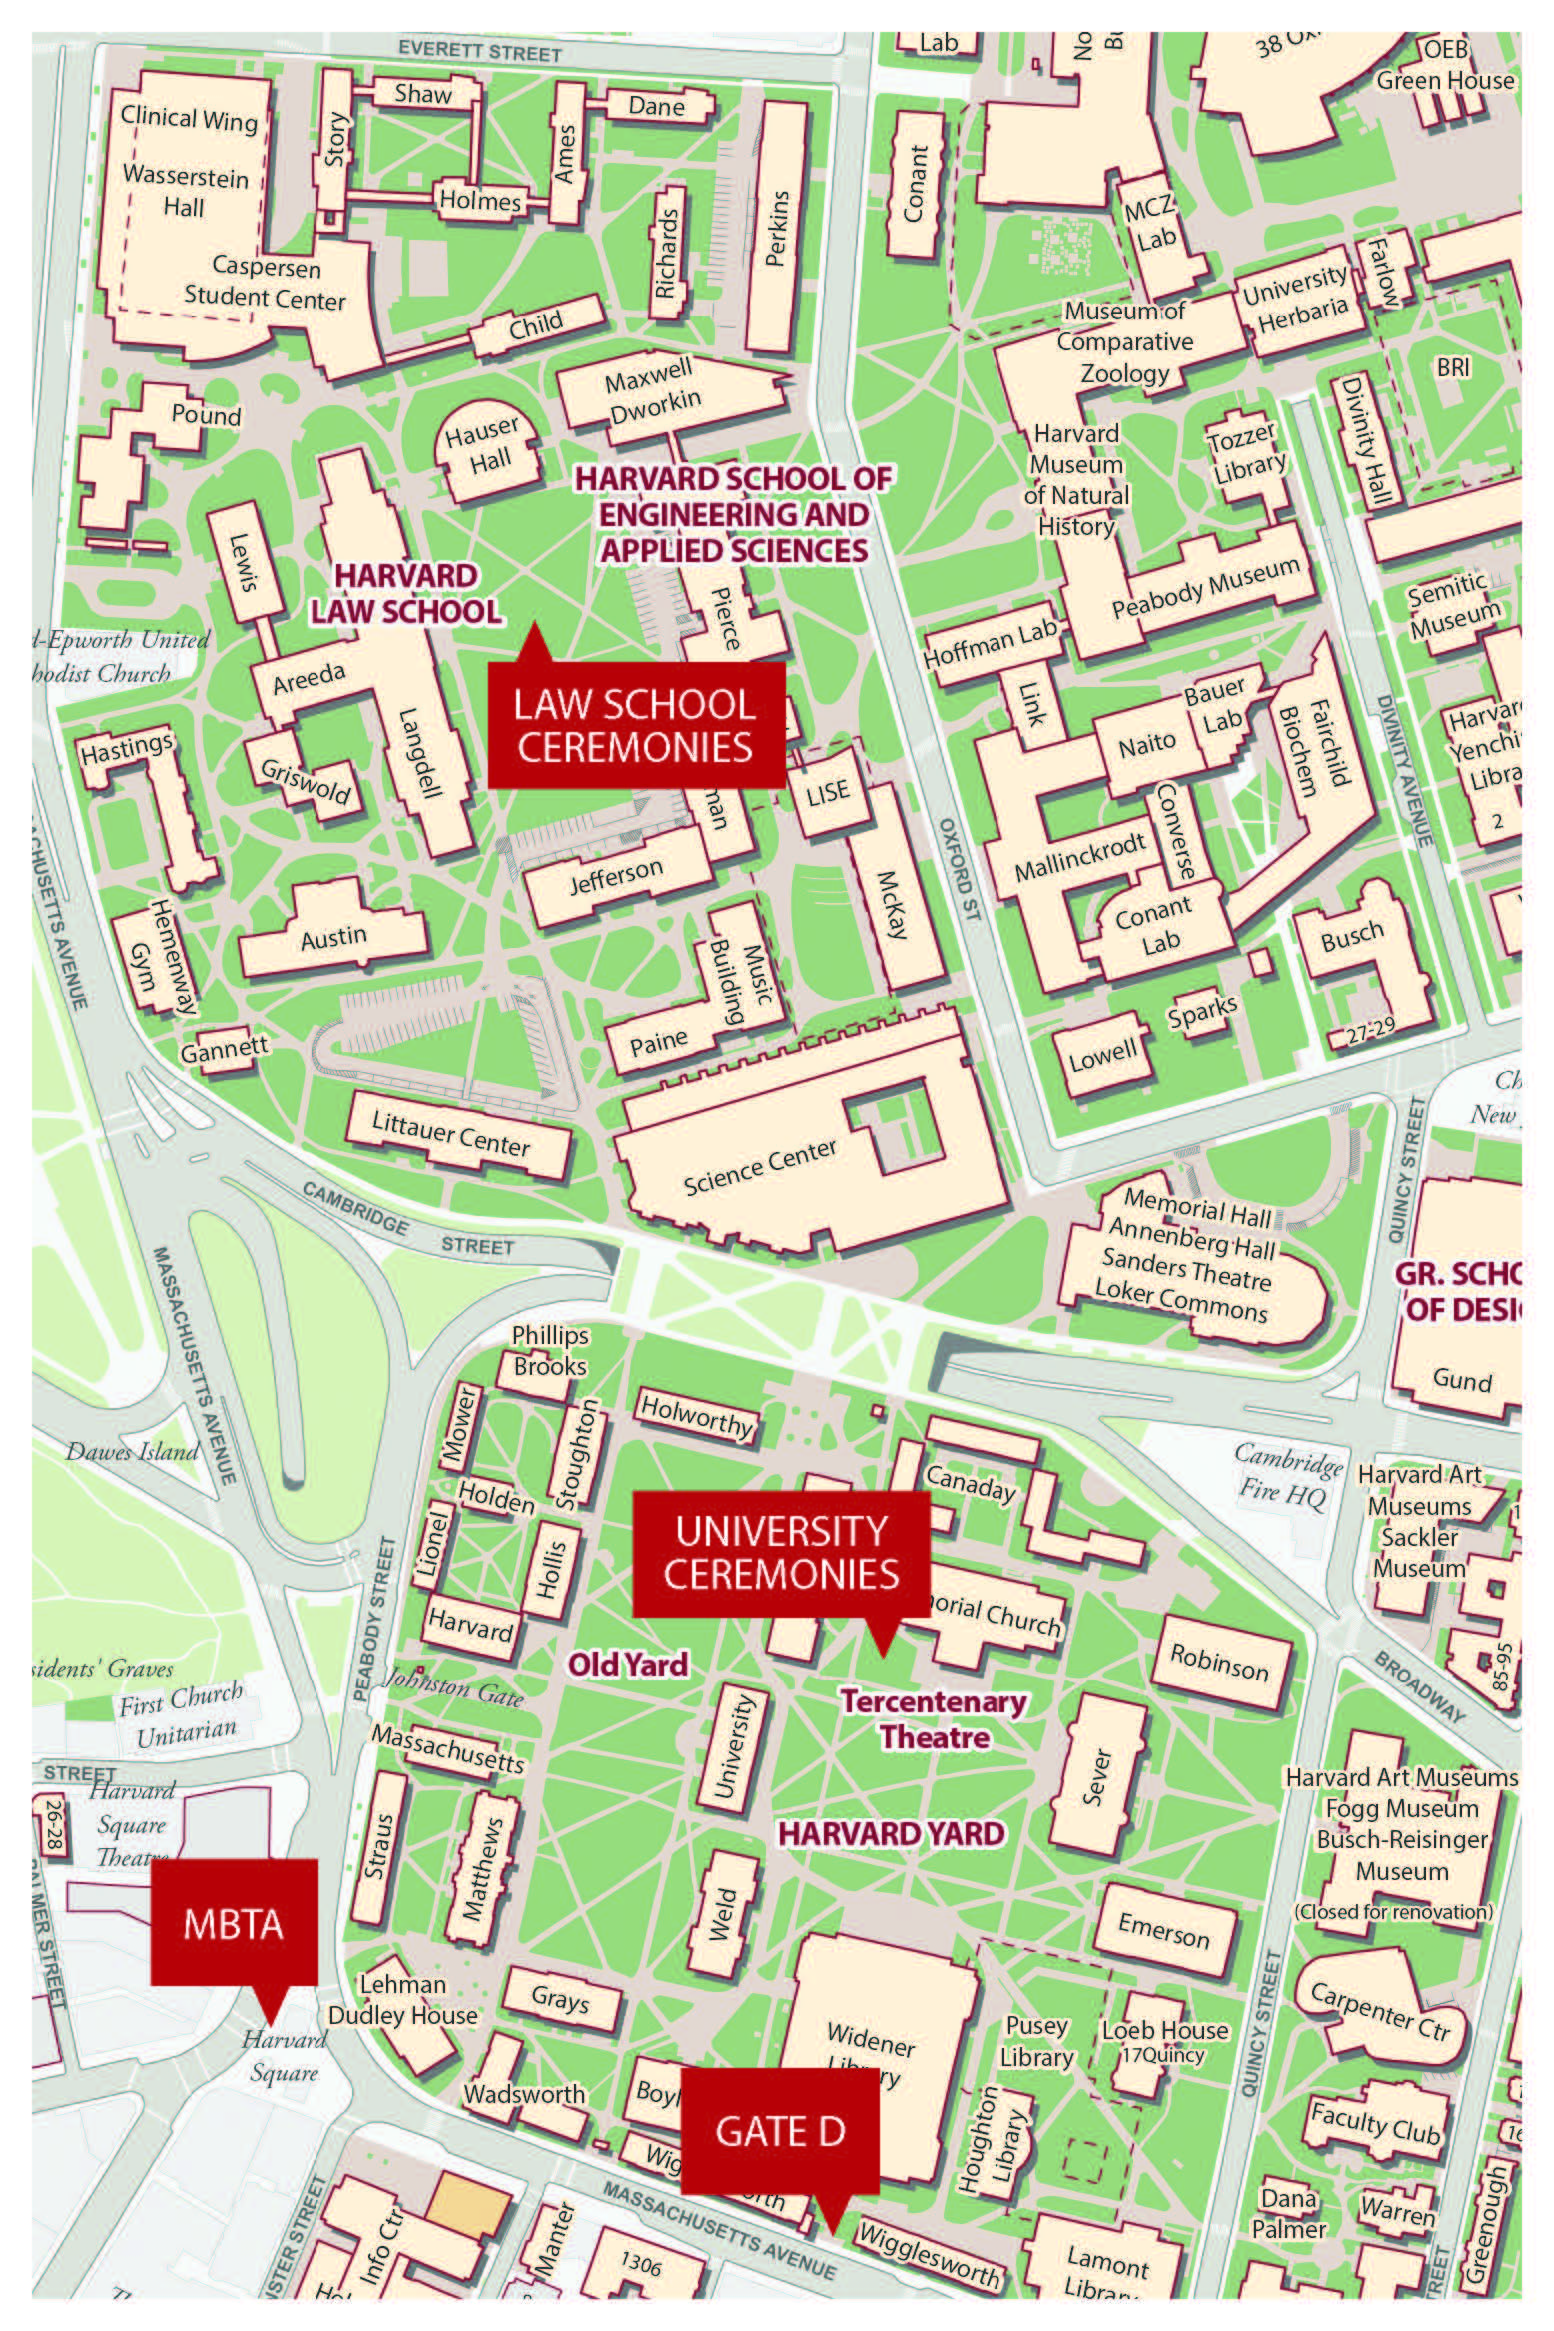 Harvard Law Maps | Harvard Law on u of michigan hospital map, u of o campus map, university of virginia campus map, u of minn campus map, u of chicago campus map, pomerantz center building map, uiowa map, university of iowa map, u of alberta campus map, northwestern u campus map, u of iowa graduation, u of texas campus map, iowa colleges and universities map, u south dakota campus map, u of waterloo campus map, u of iowa logo, u of akron campus map, u of a campus map, iowa state map, seattle u campus map,